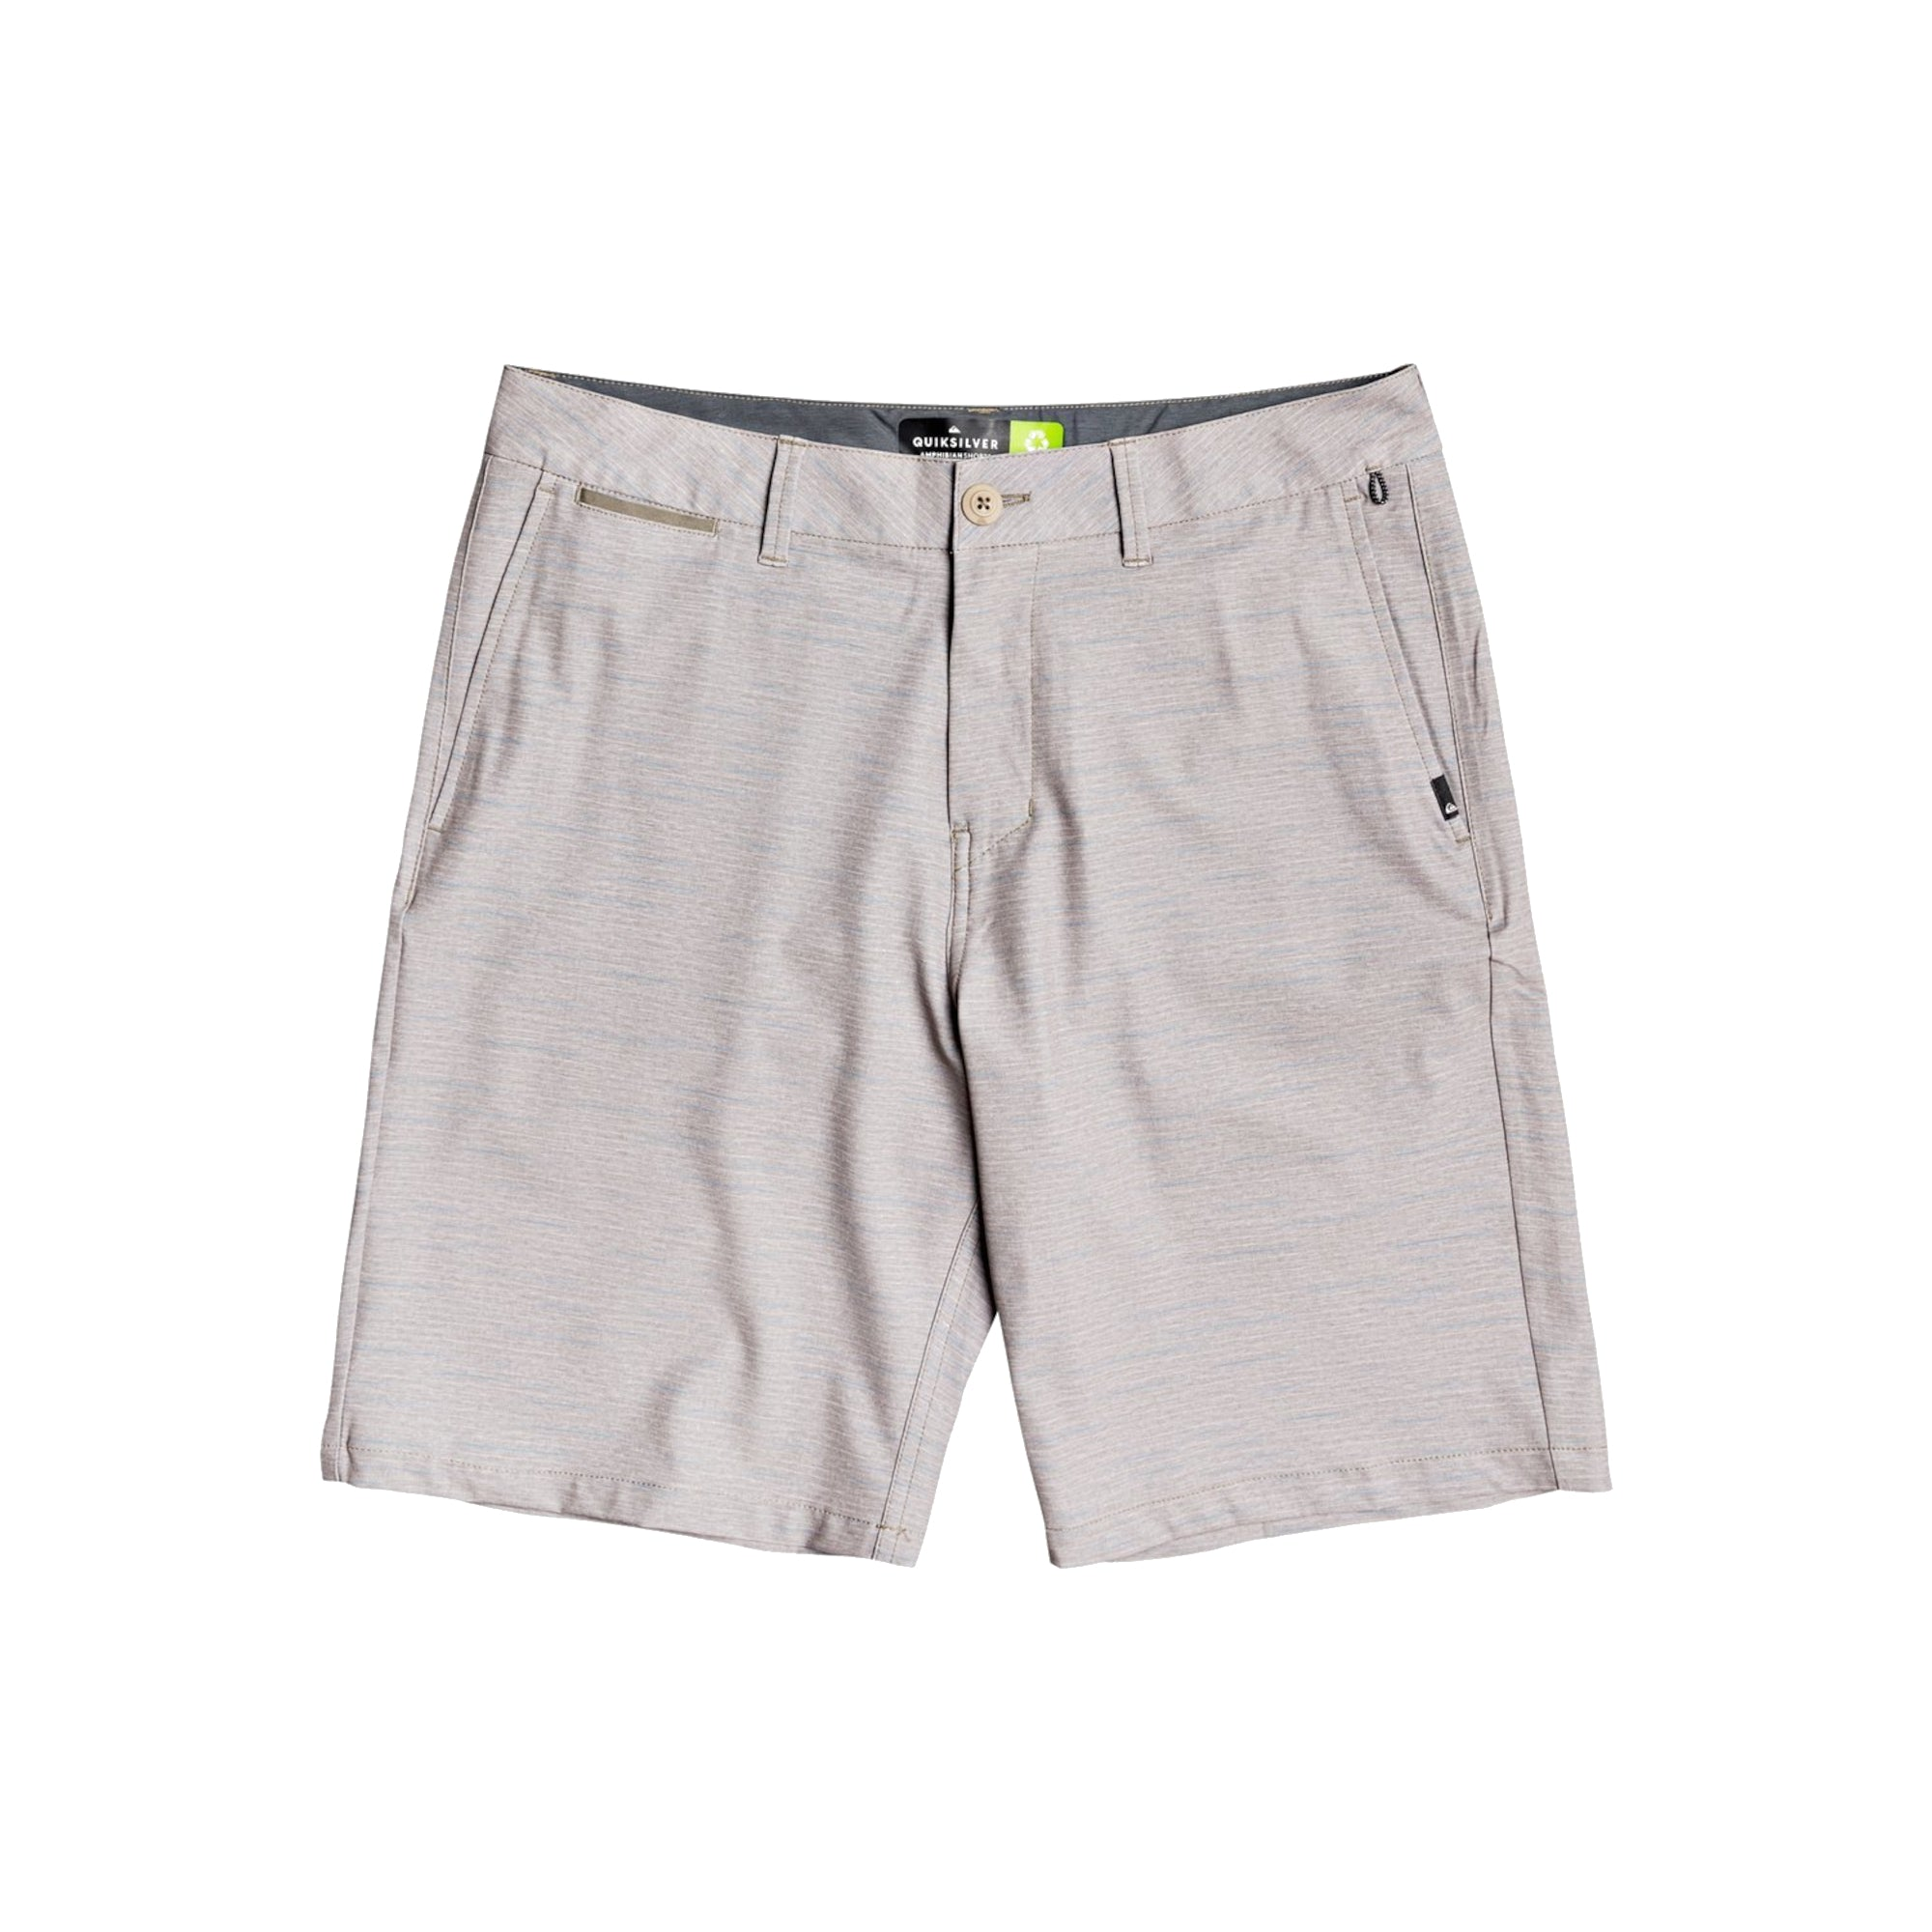 "Quiksilver Union Cloud 19"" Amphibian Men's Walkshorts"